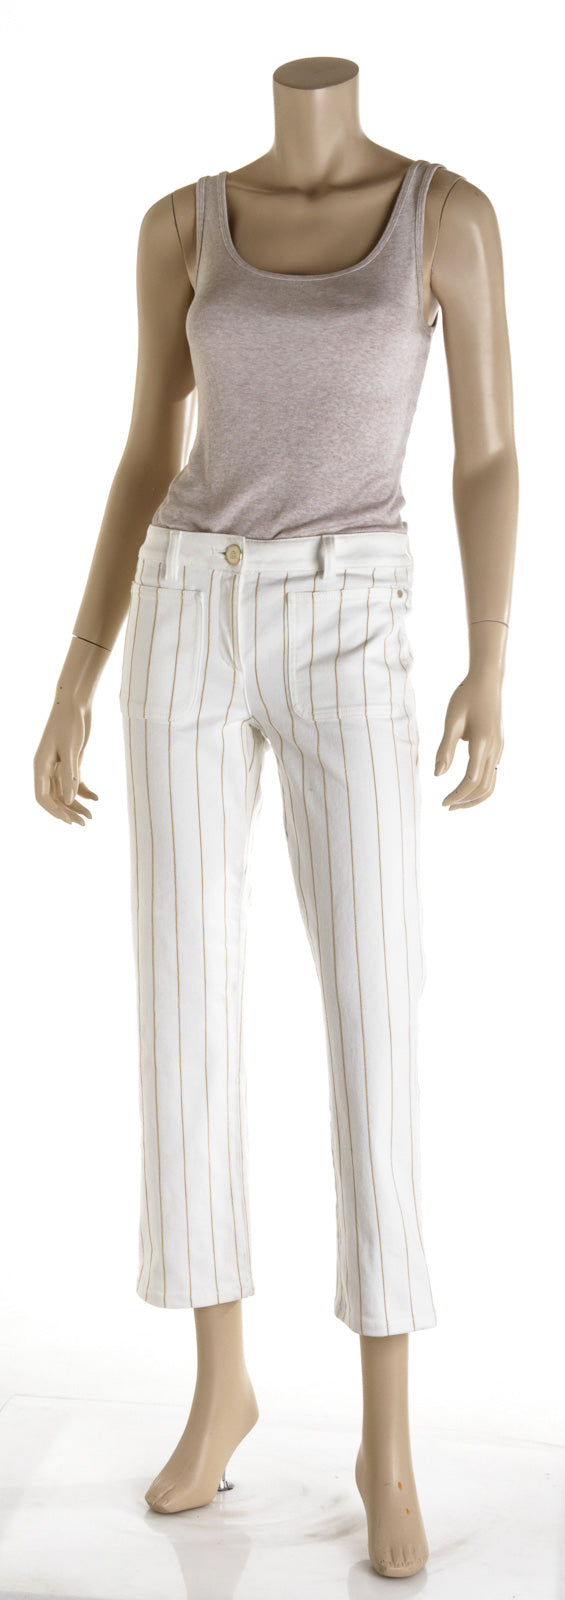 Chanel Metallic Gold Stipe White Jeans (Size 38)